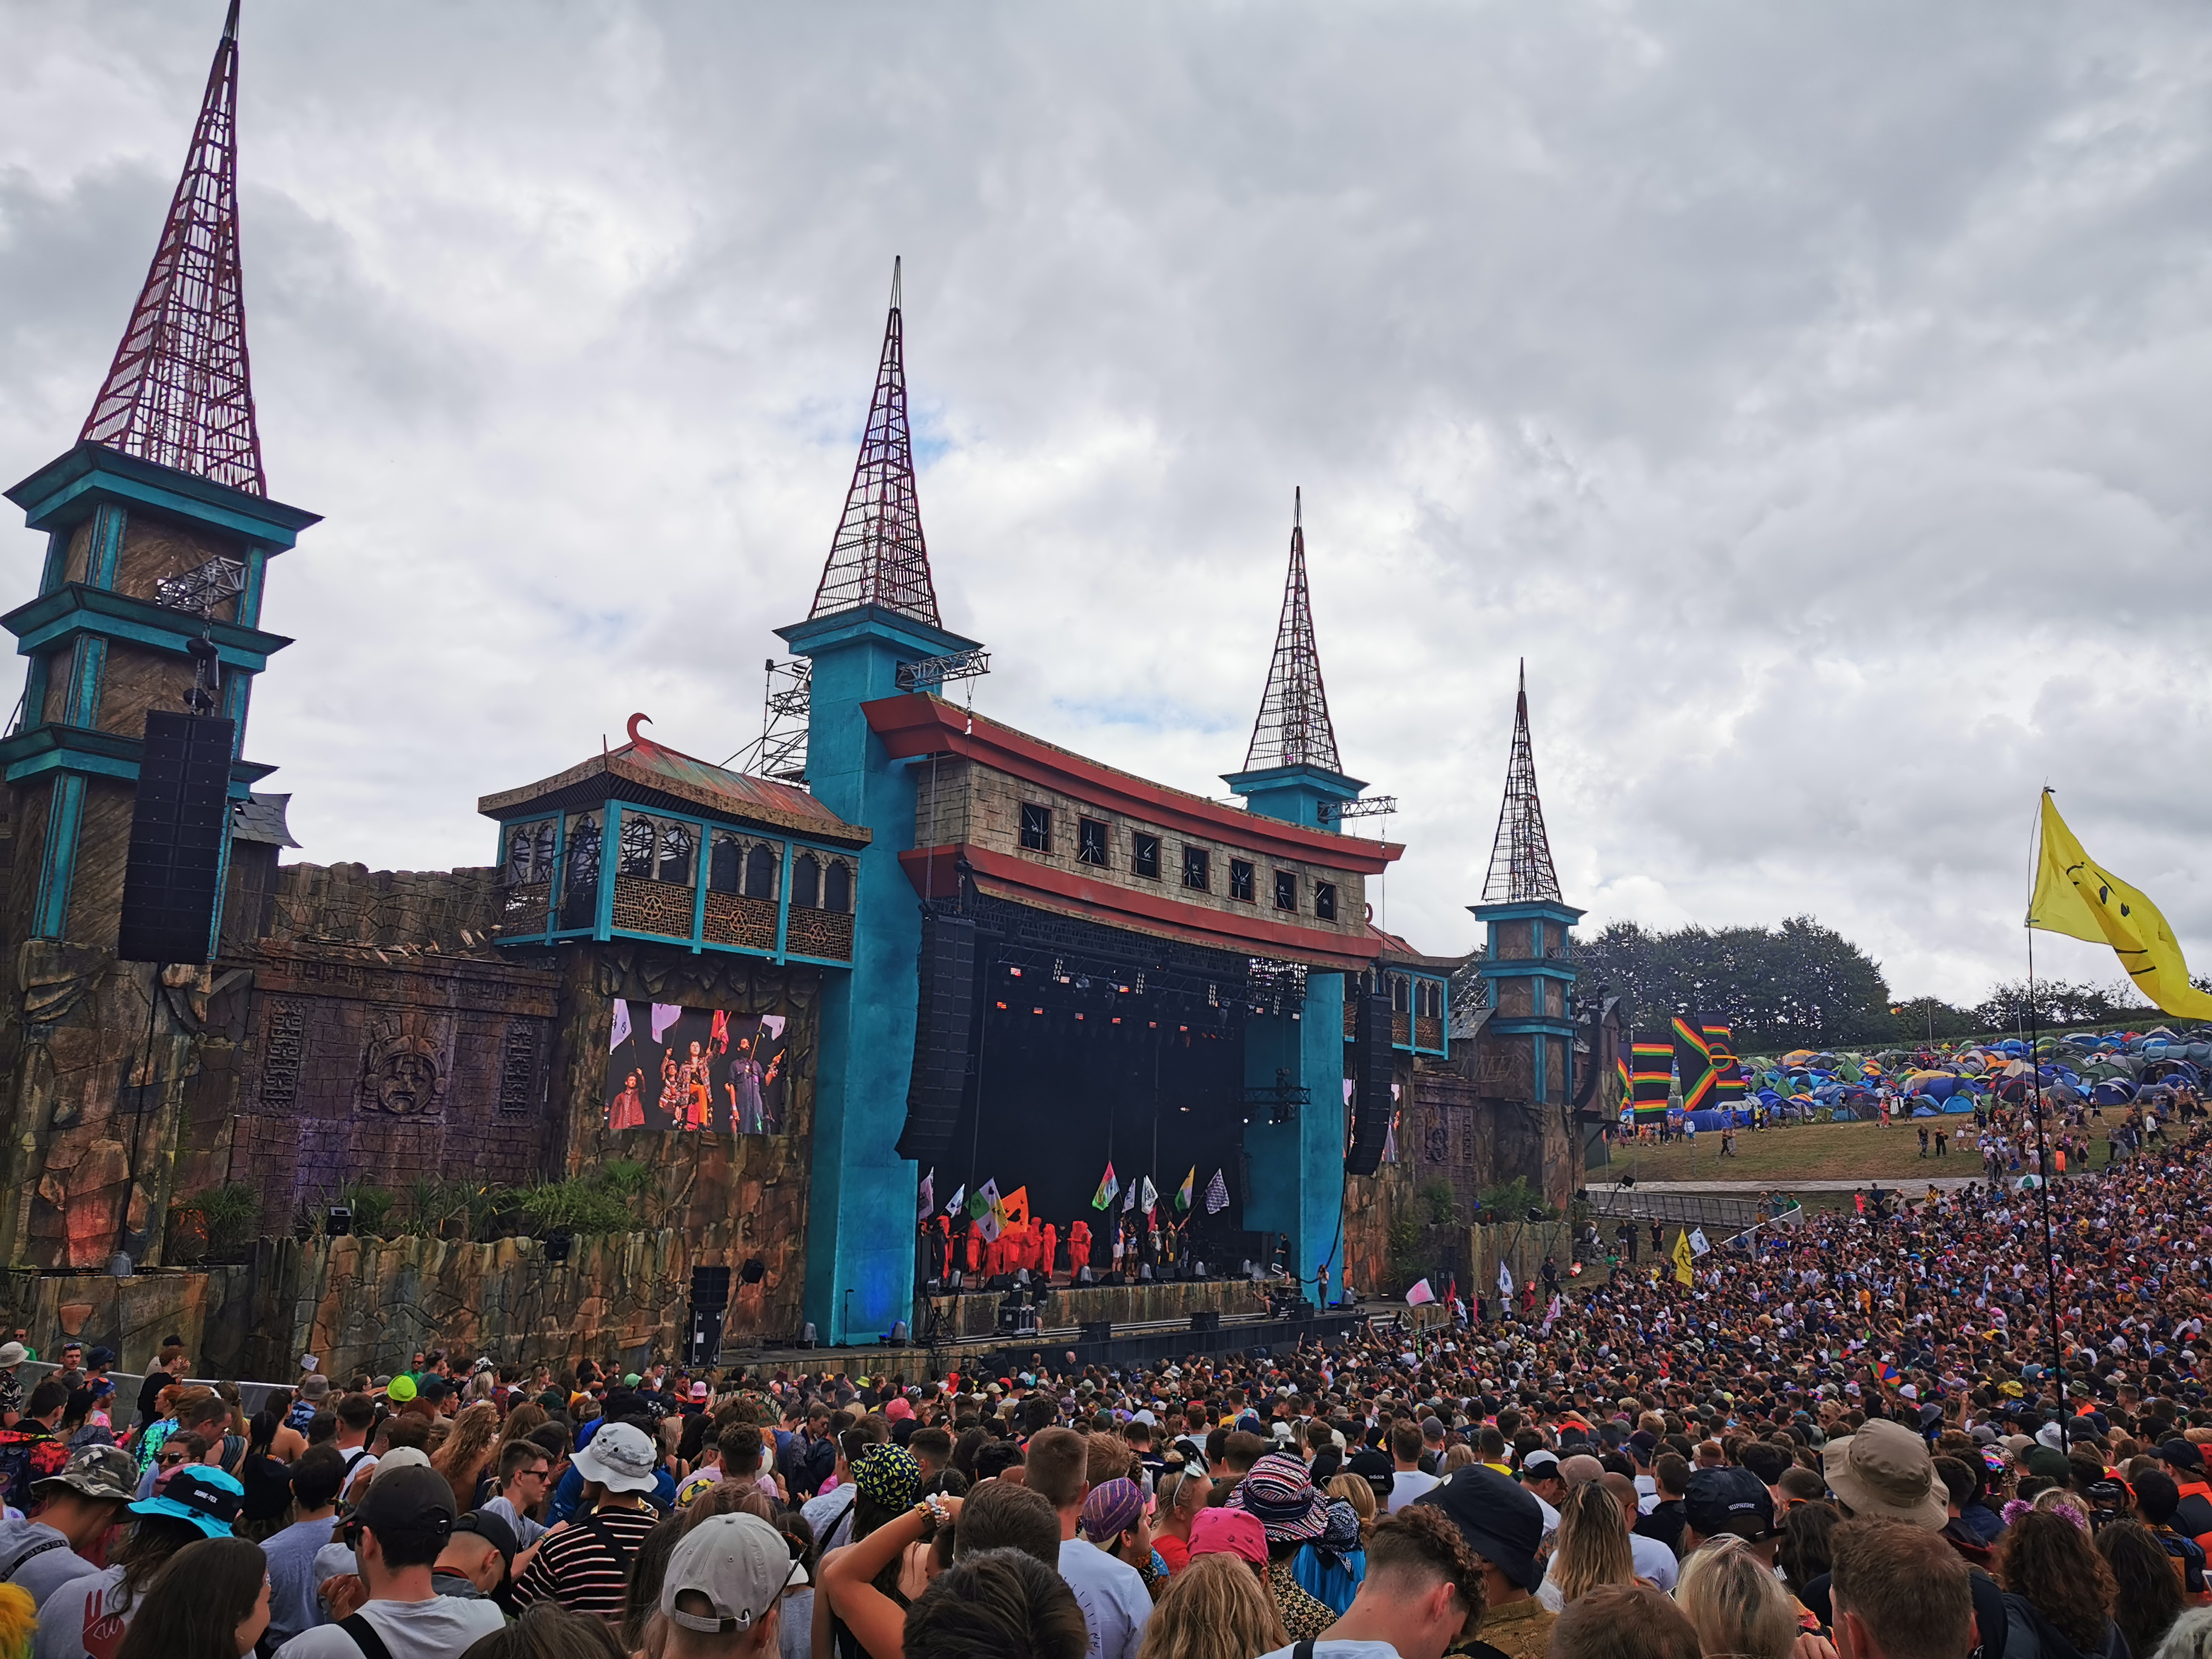 Boomtown Fair 2019 opening ceremony Lion's Den stage